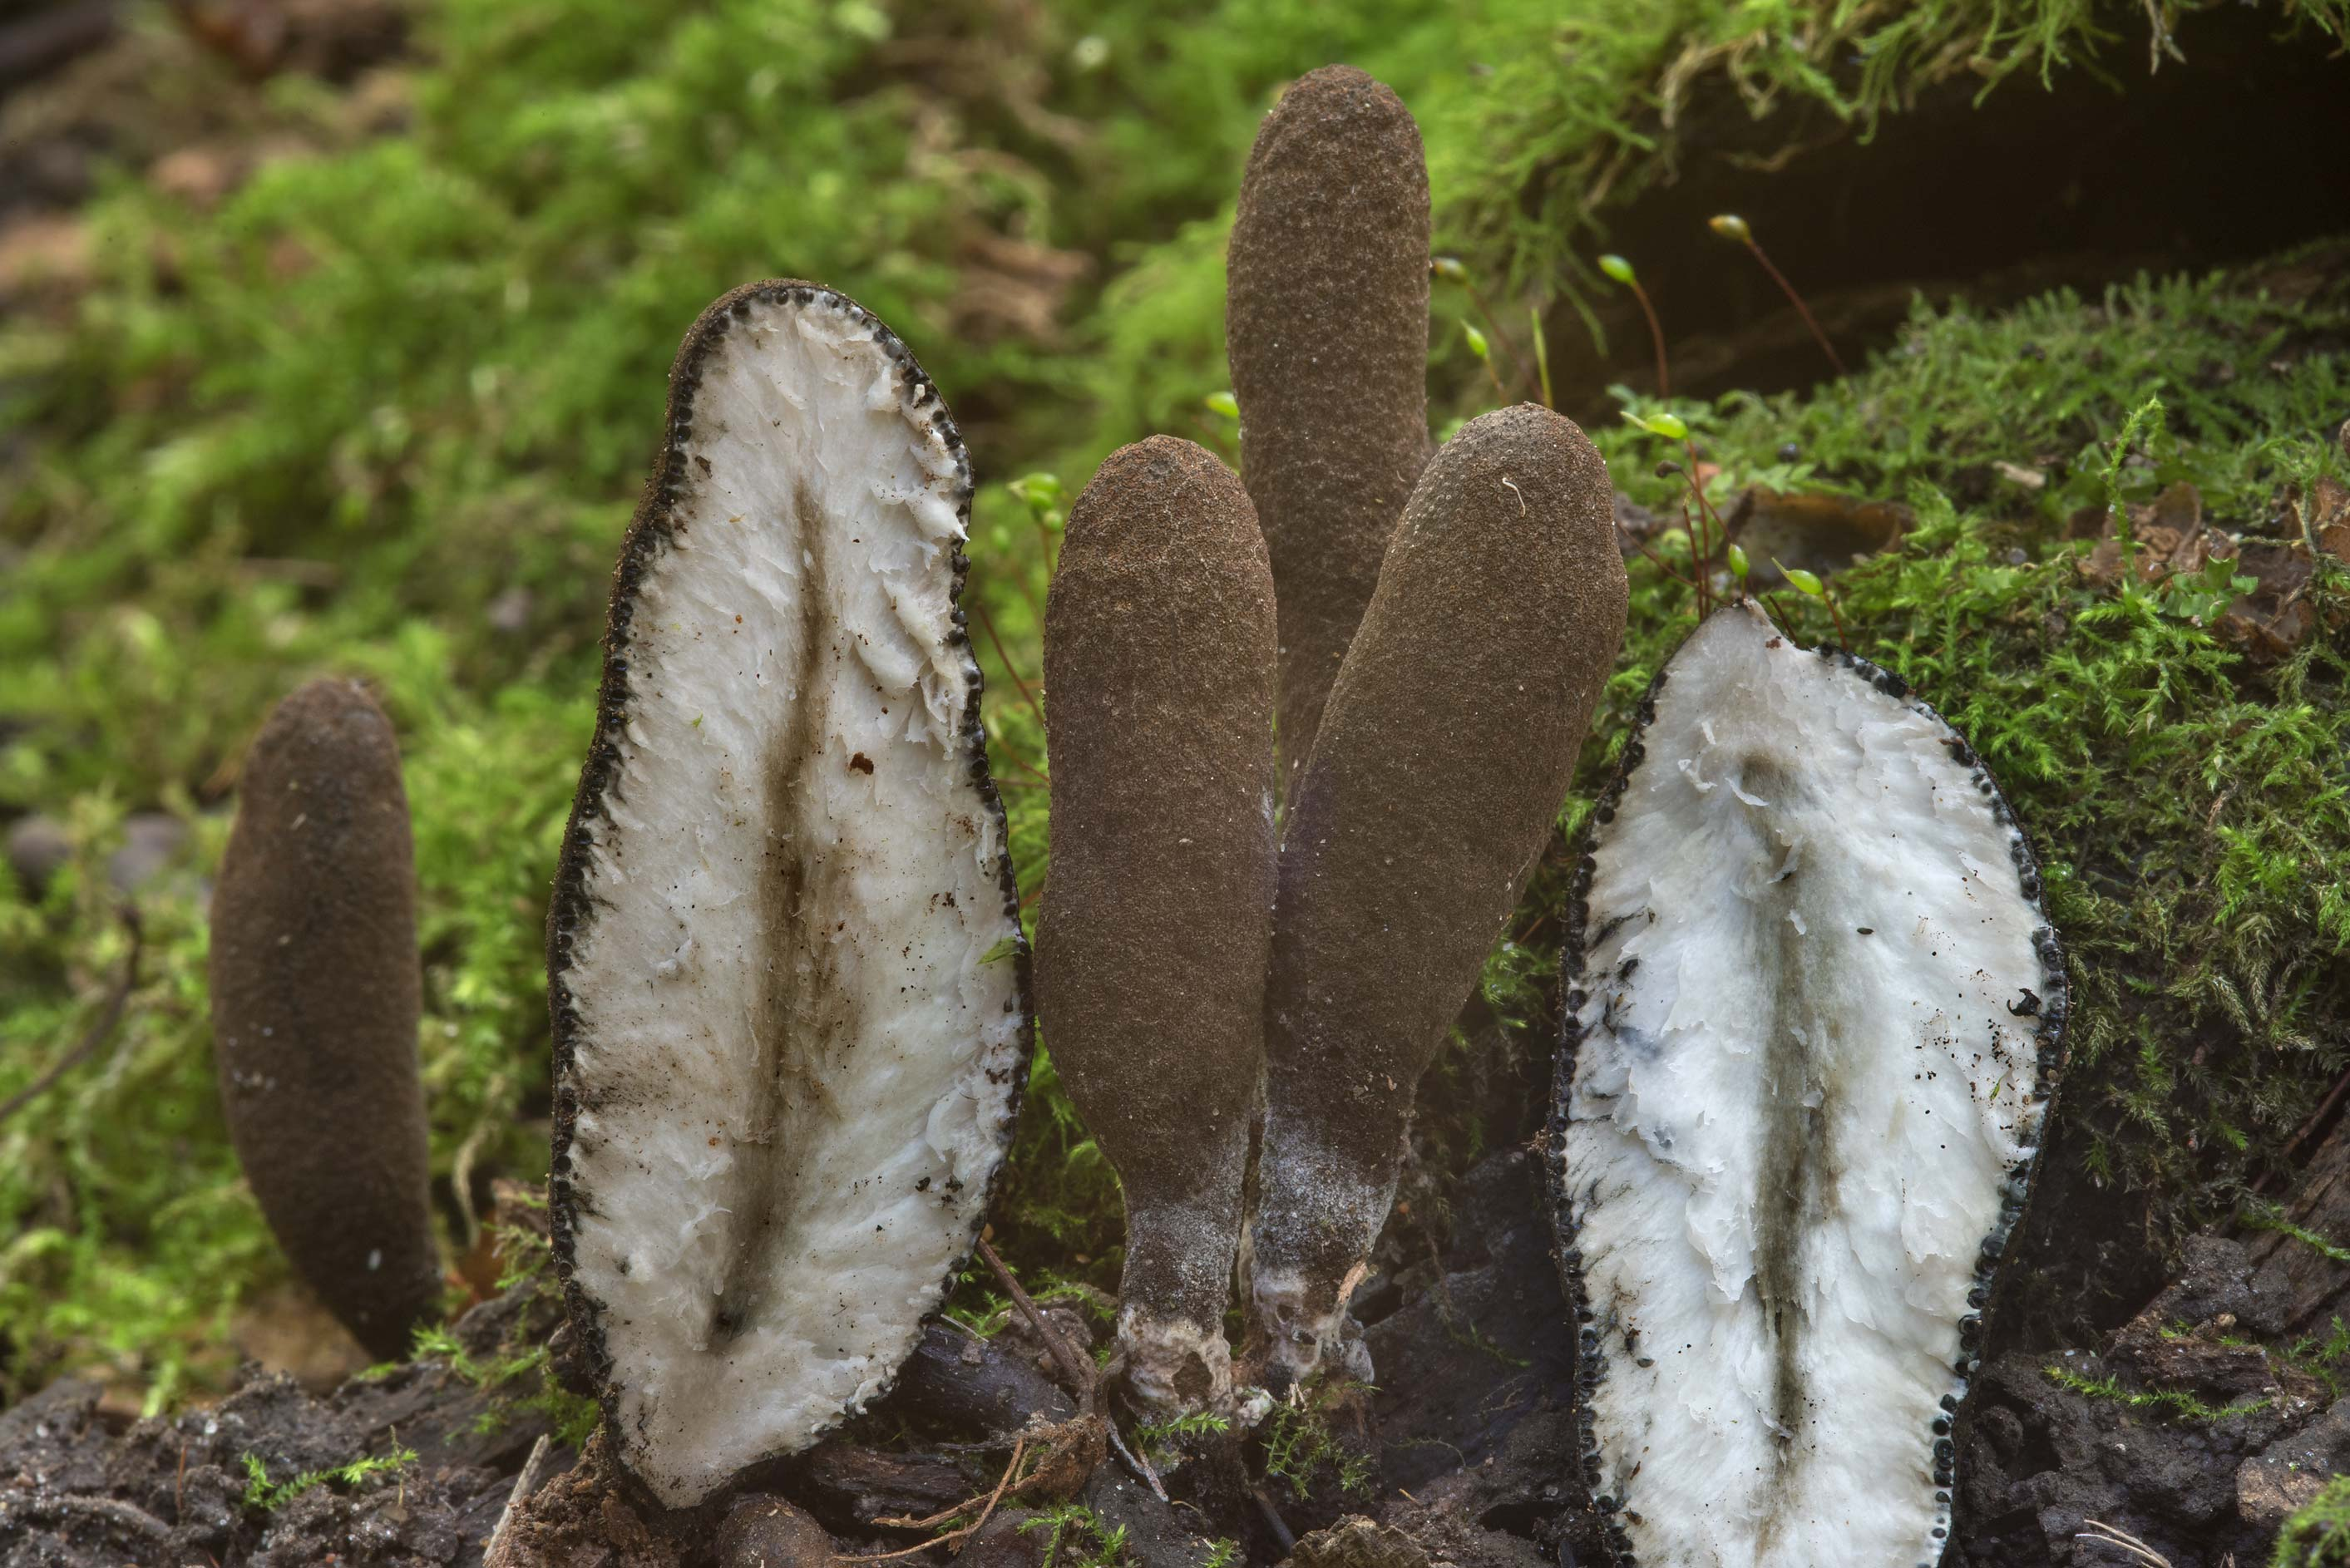 Dissected mushrooms dead man's fingers (Xylaria...Selo) near St.Petersburg, Russia